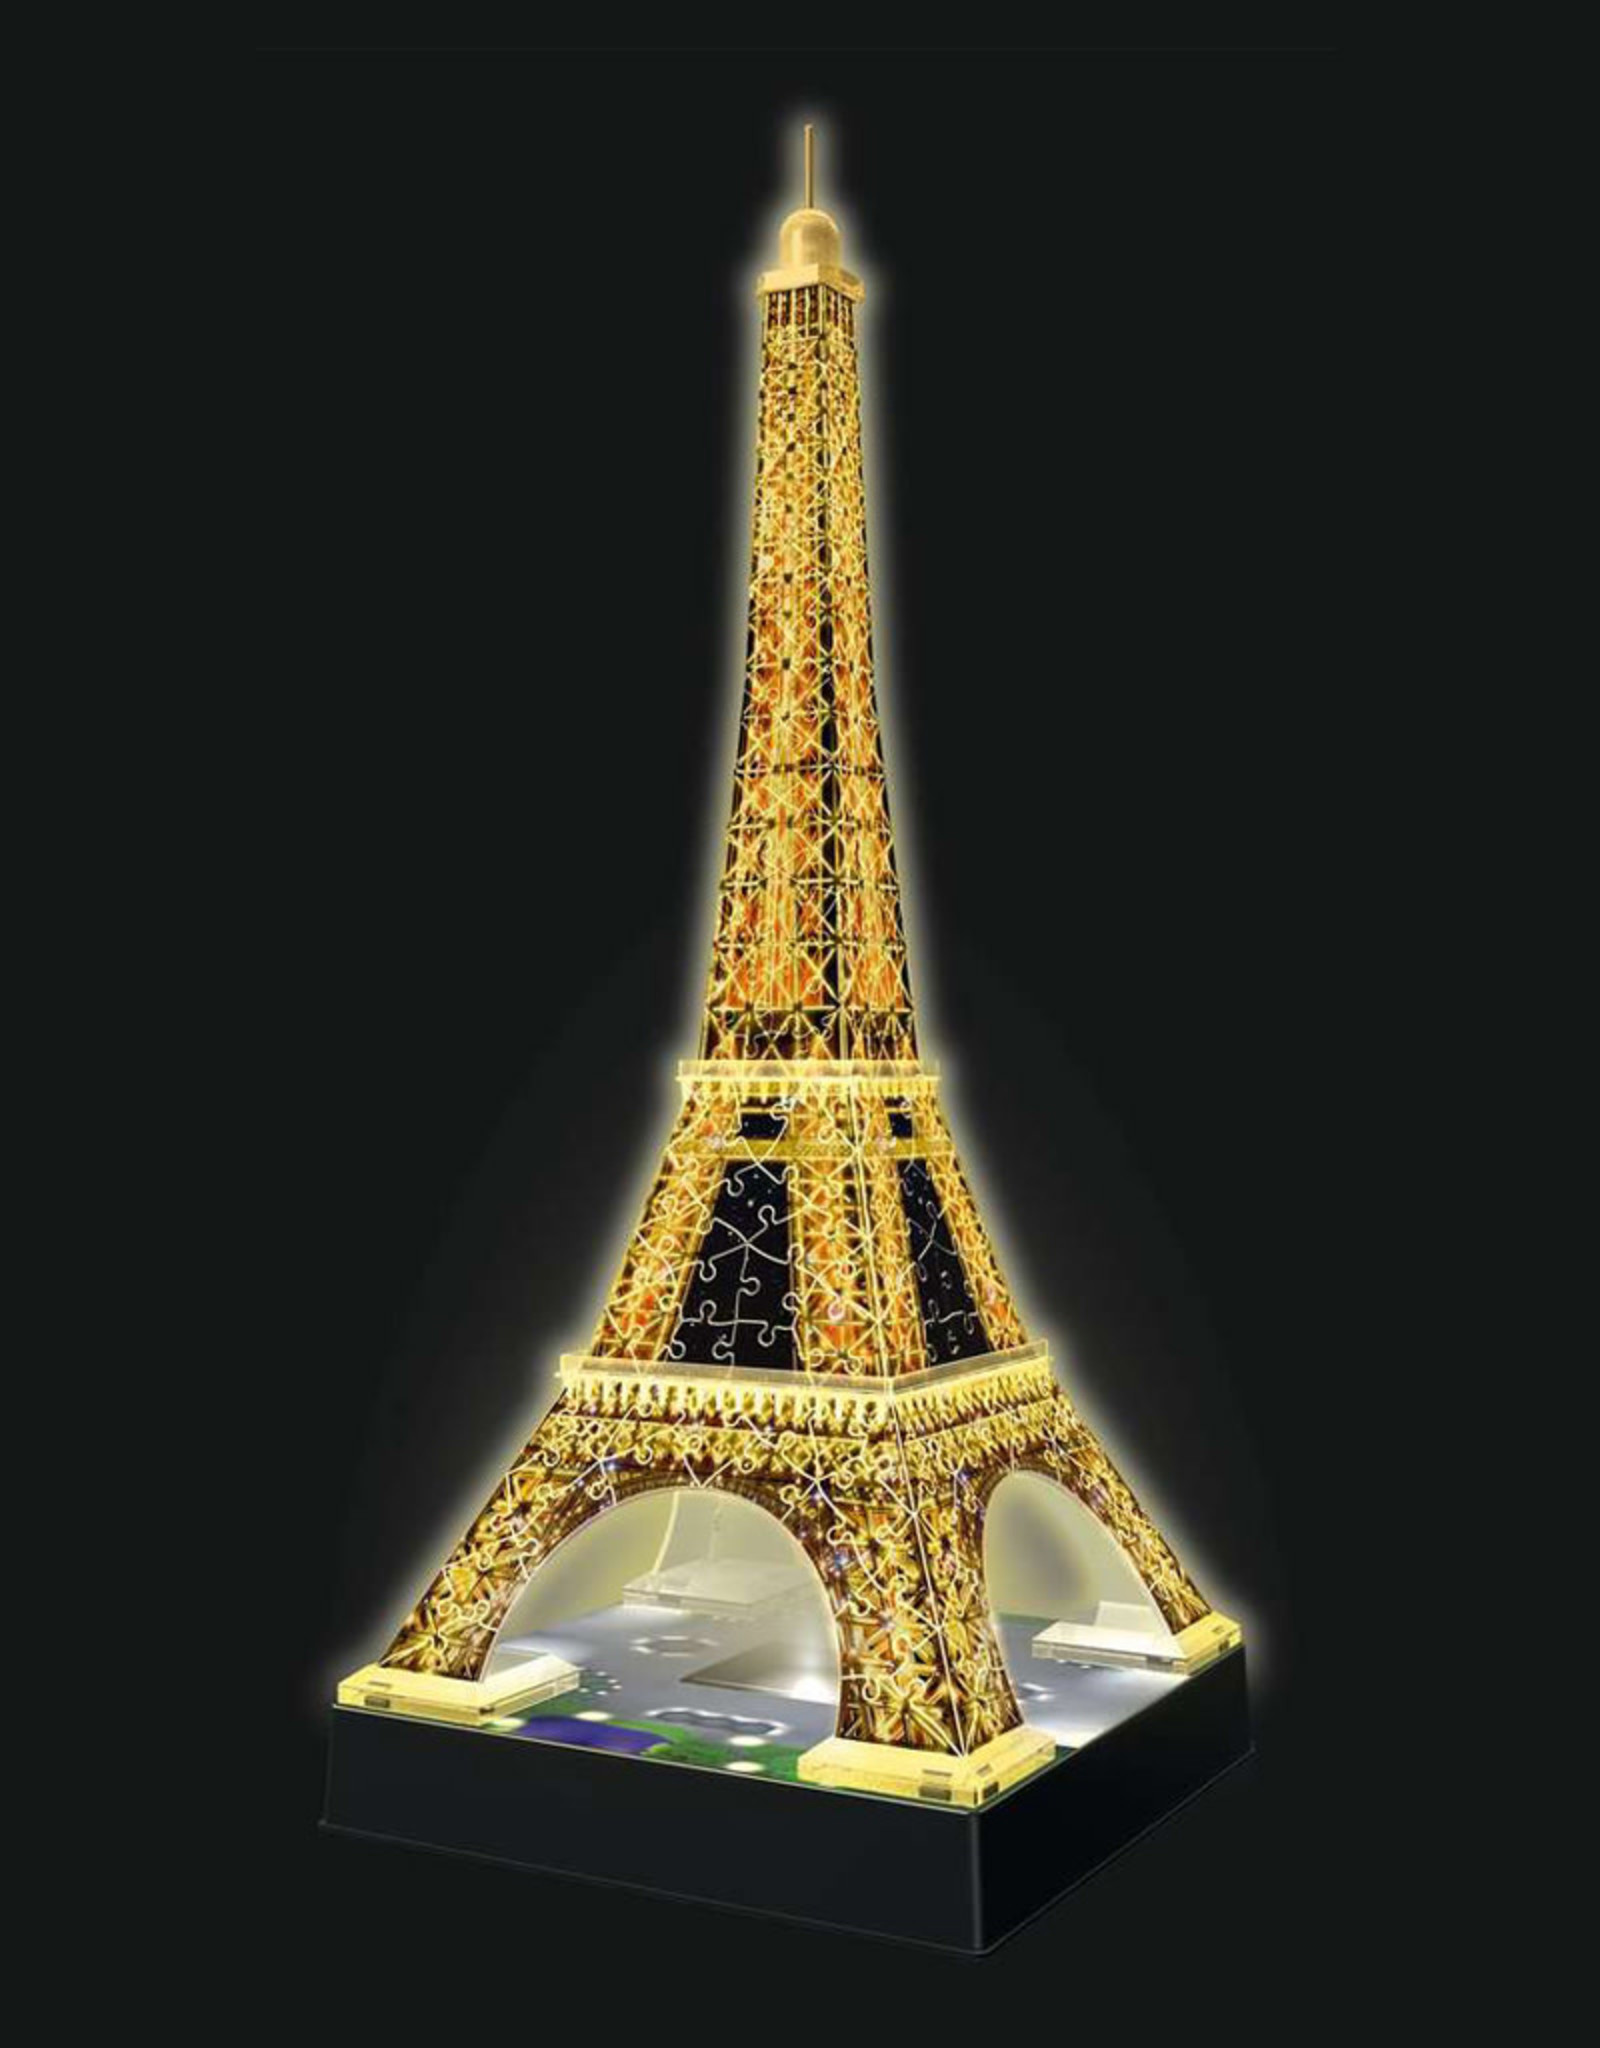 Ravensburger Eiffel Tower by Night  3D Puzzle 216 PCS